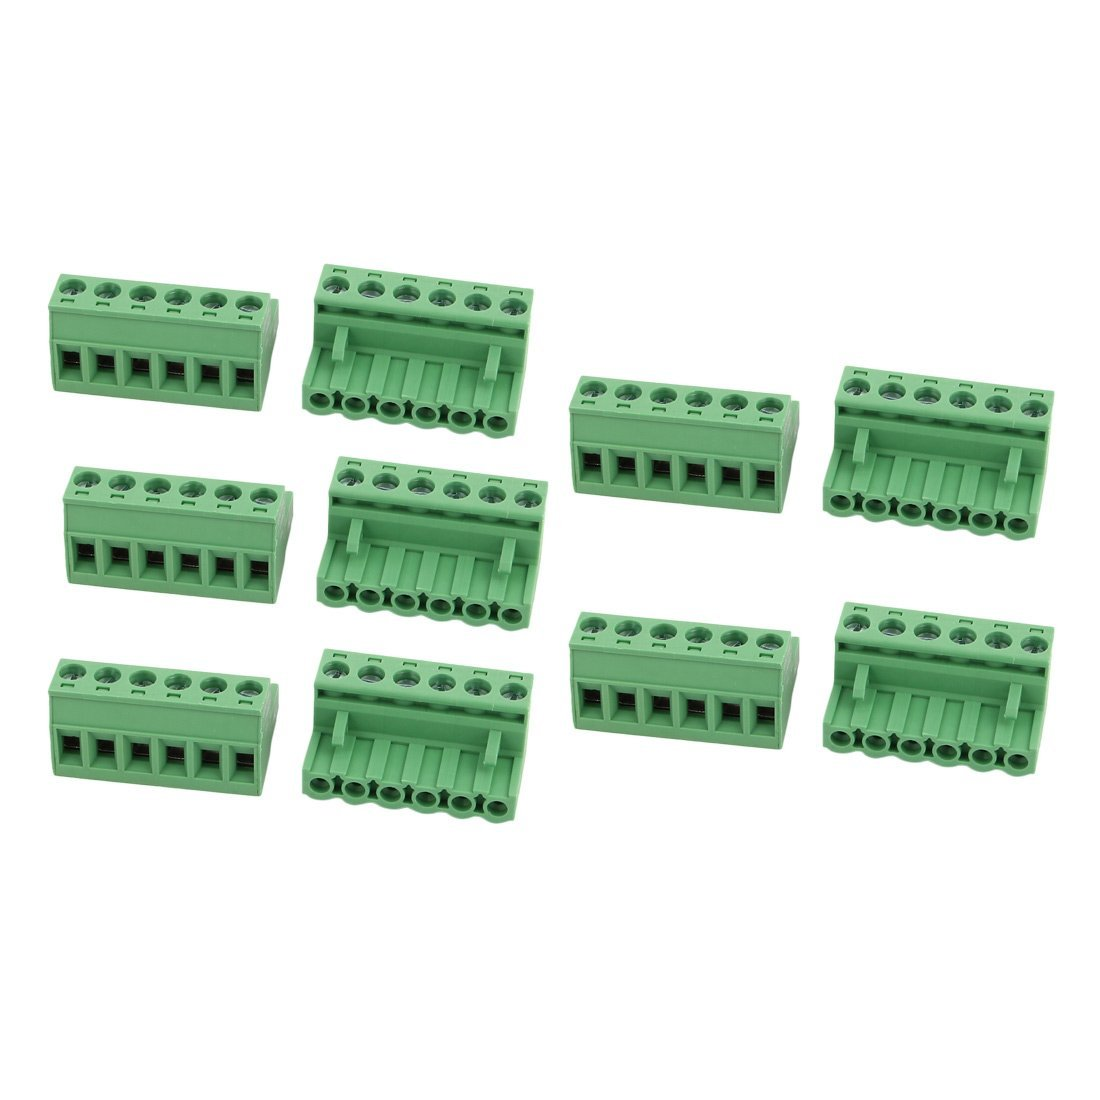 uxcell 10Pcs AC 300V 15A 5.08mm Pitch 6 Positions PCB Terminal Block Wire Connection